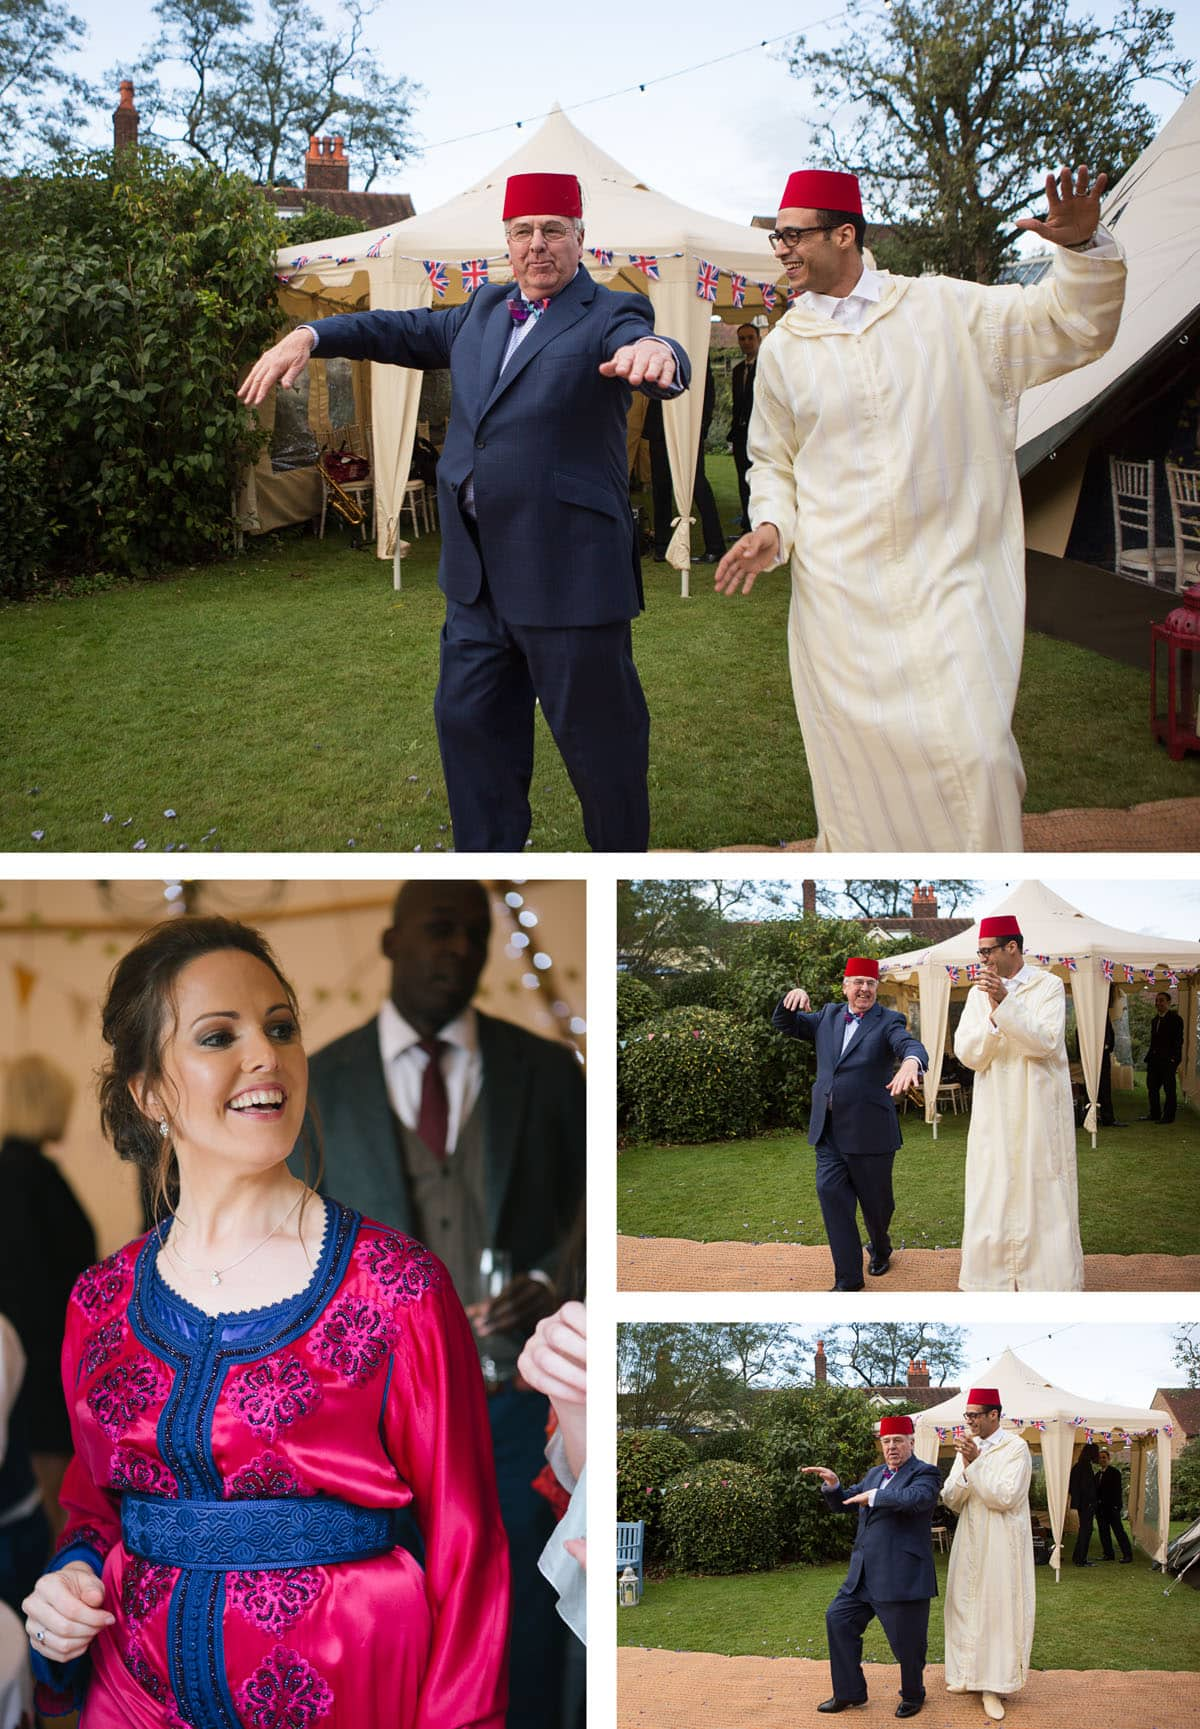 Father of the bride does funny dance off with his new son-in-law, both wearing fezzes